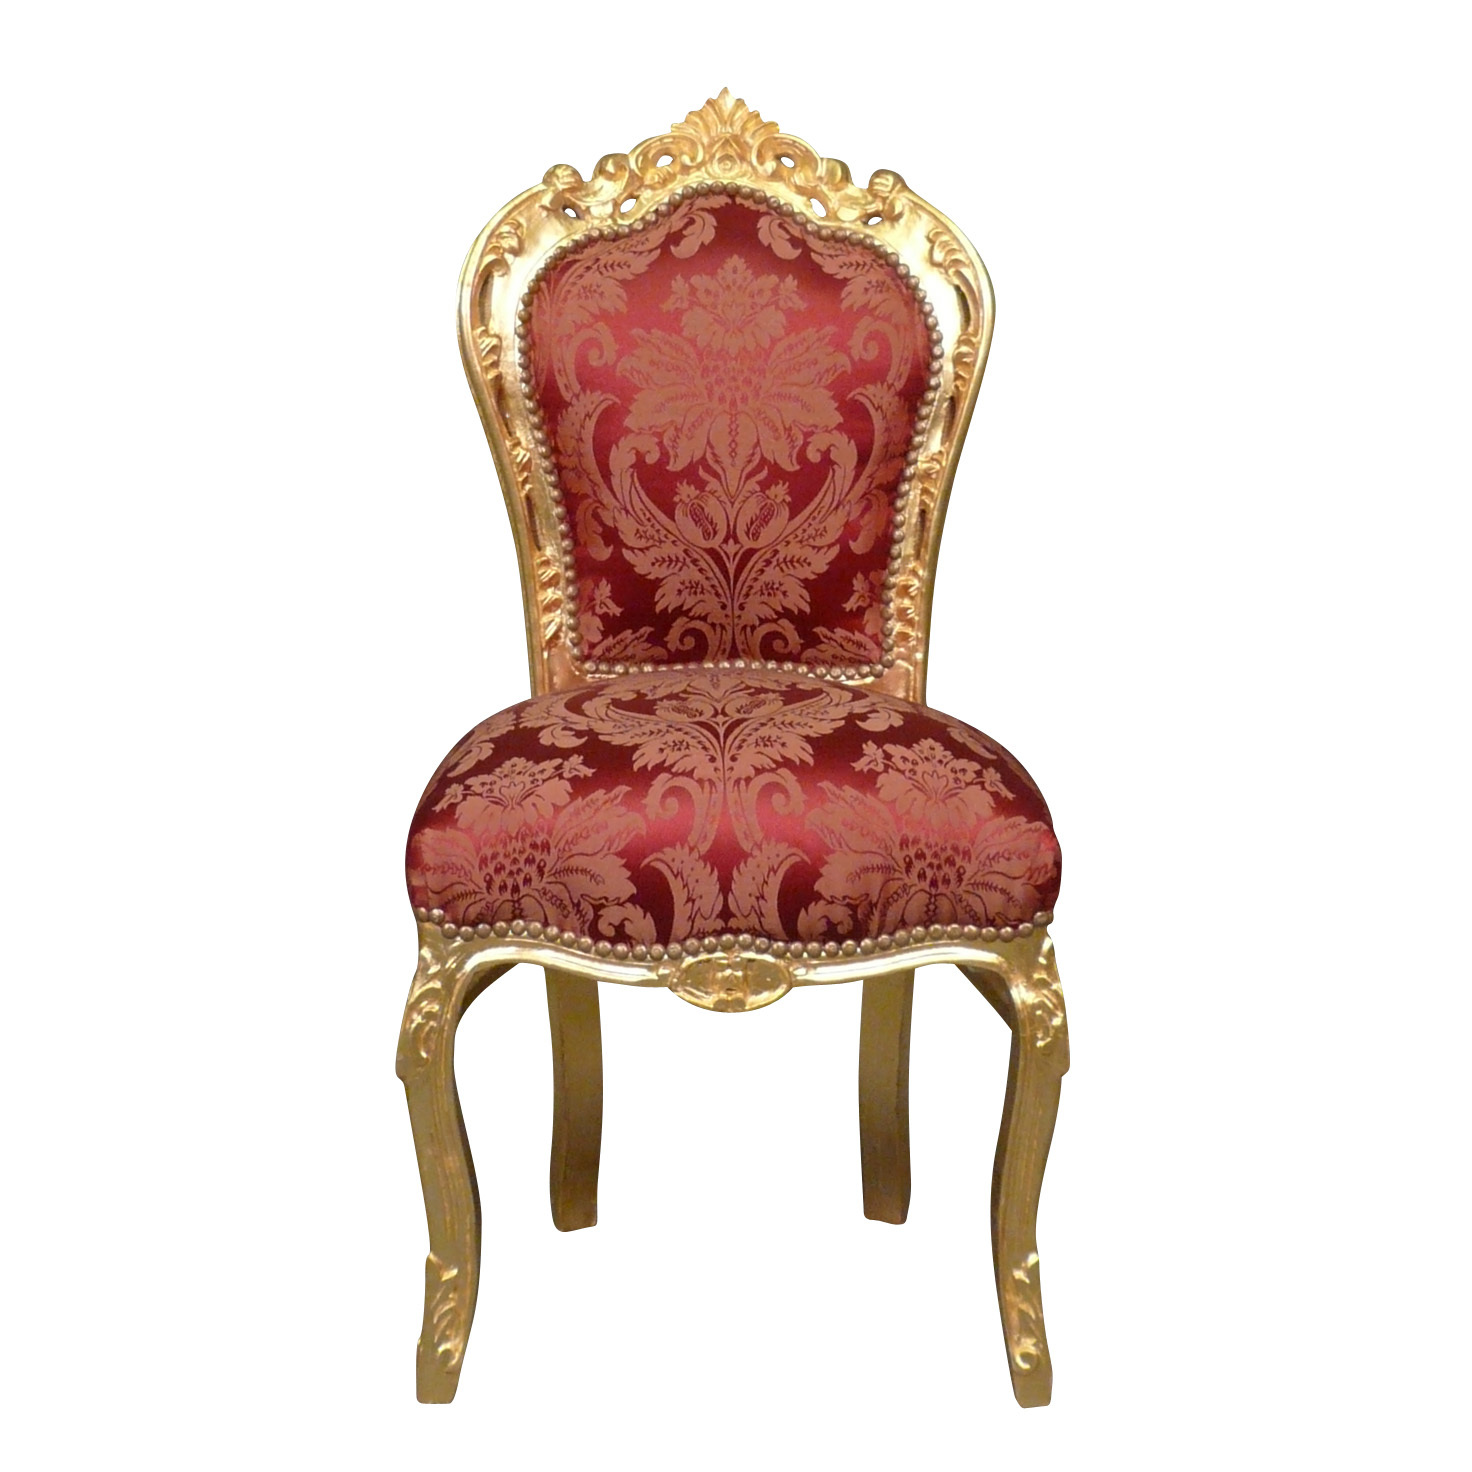 Chaise baroque rouge et or